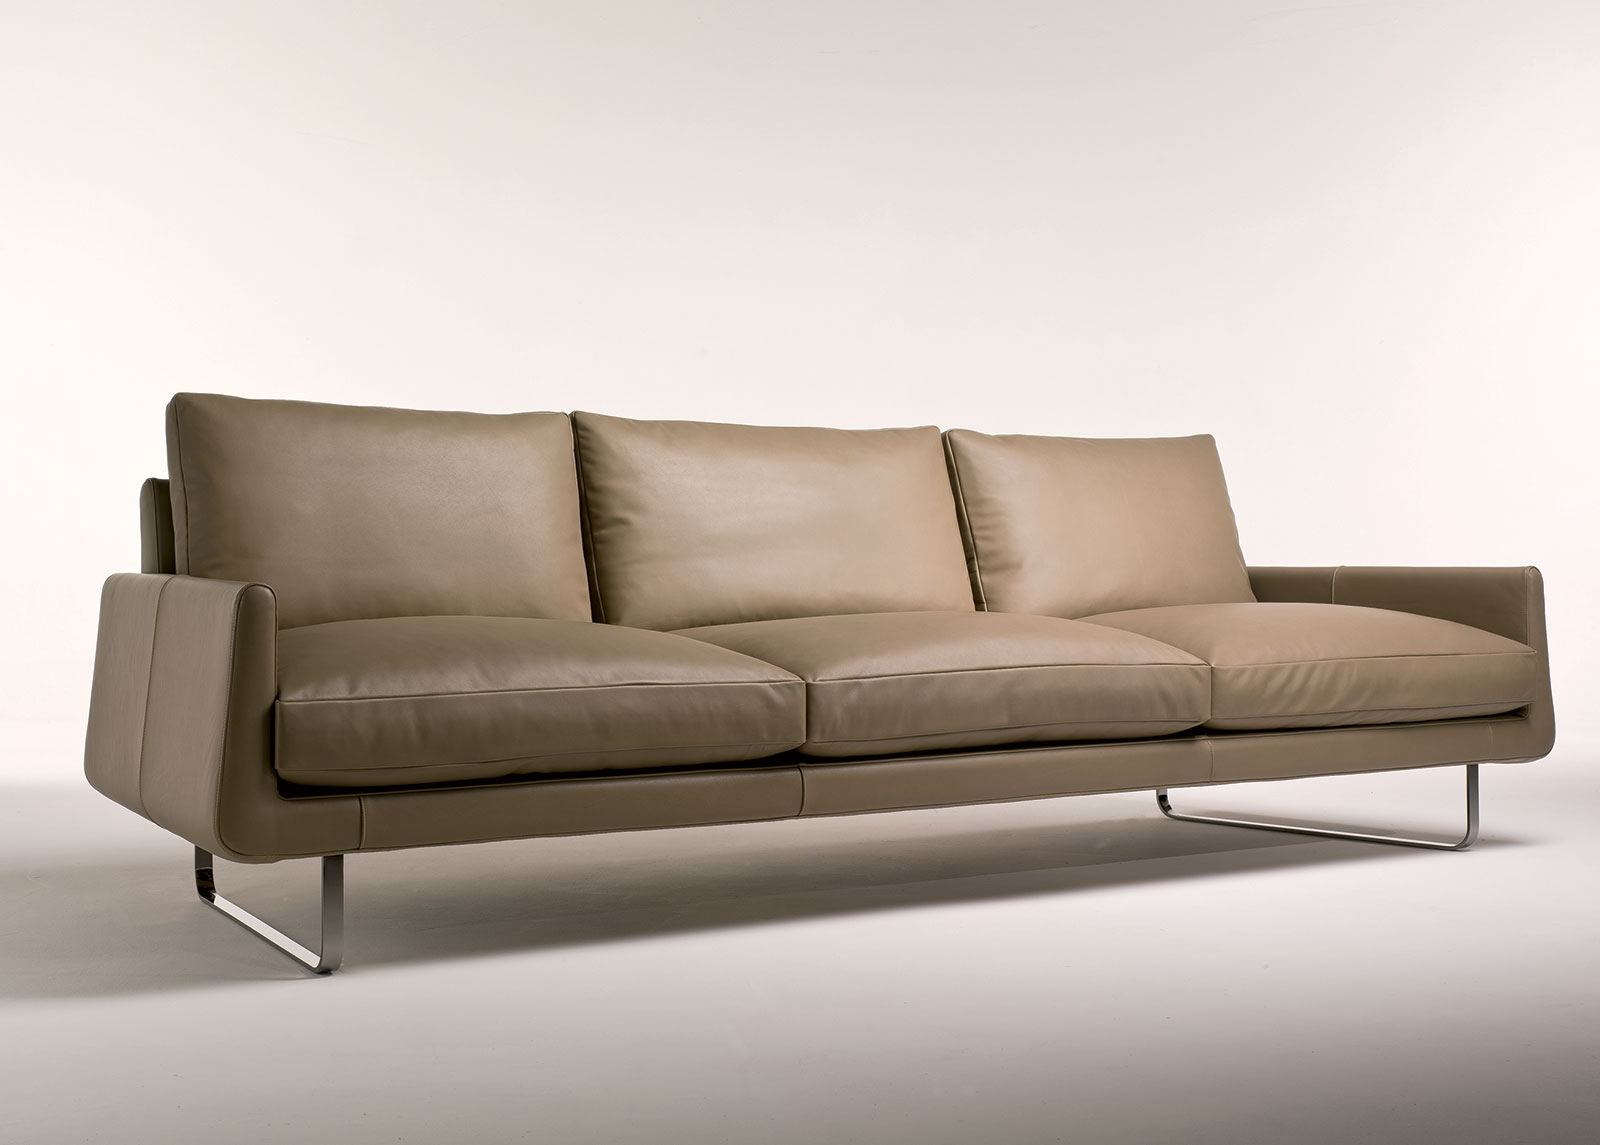 Joshua 4 Seater Leather Sofa Shop Online Italy Dream Design With 4 Seater Sofas (Photo 5 of 15)